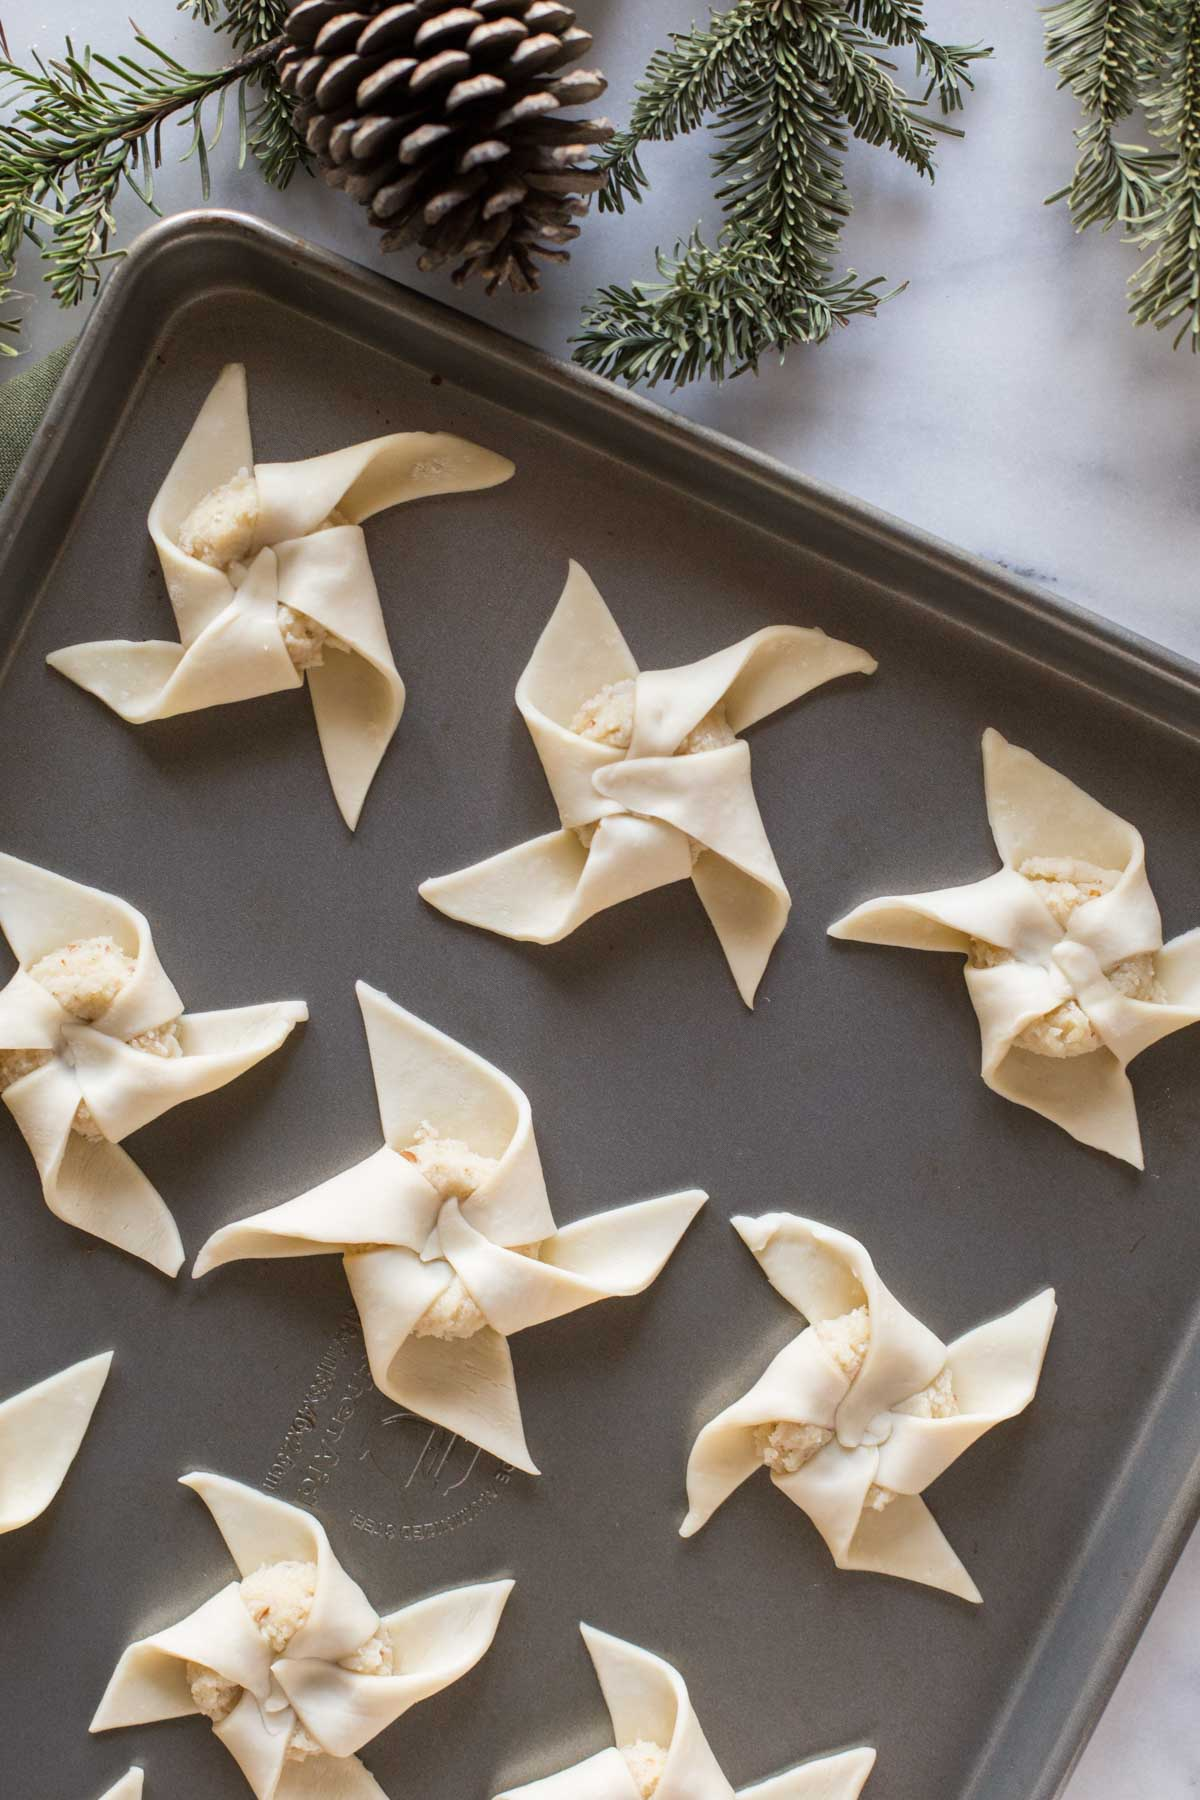 Make Ahead Almond Pinwheels on a baking sheet before being baked.